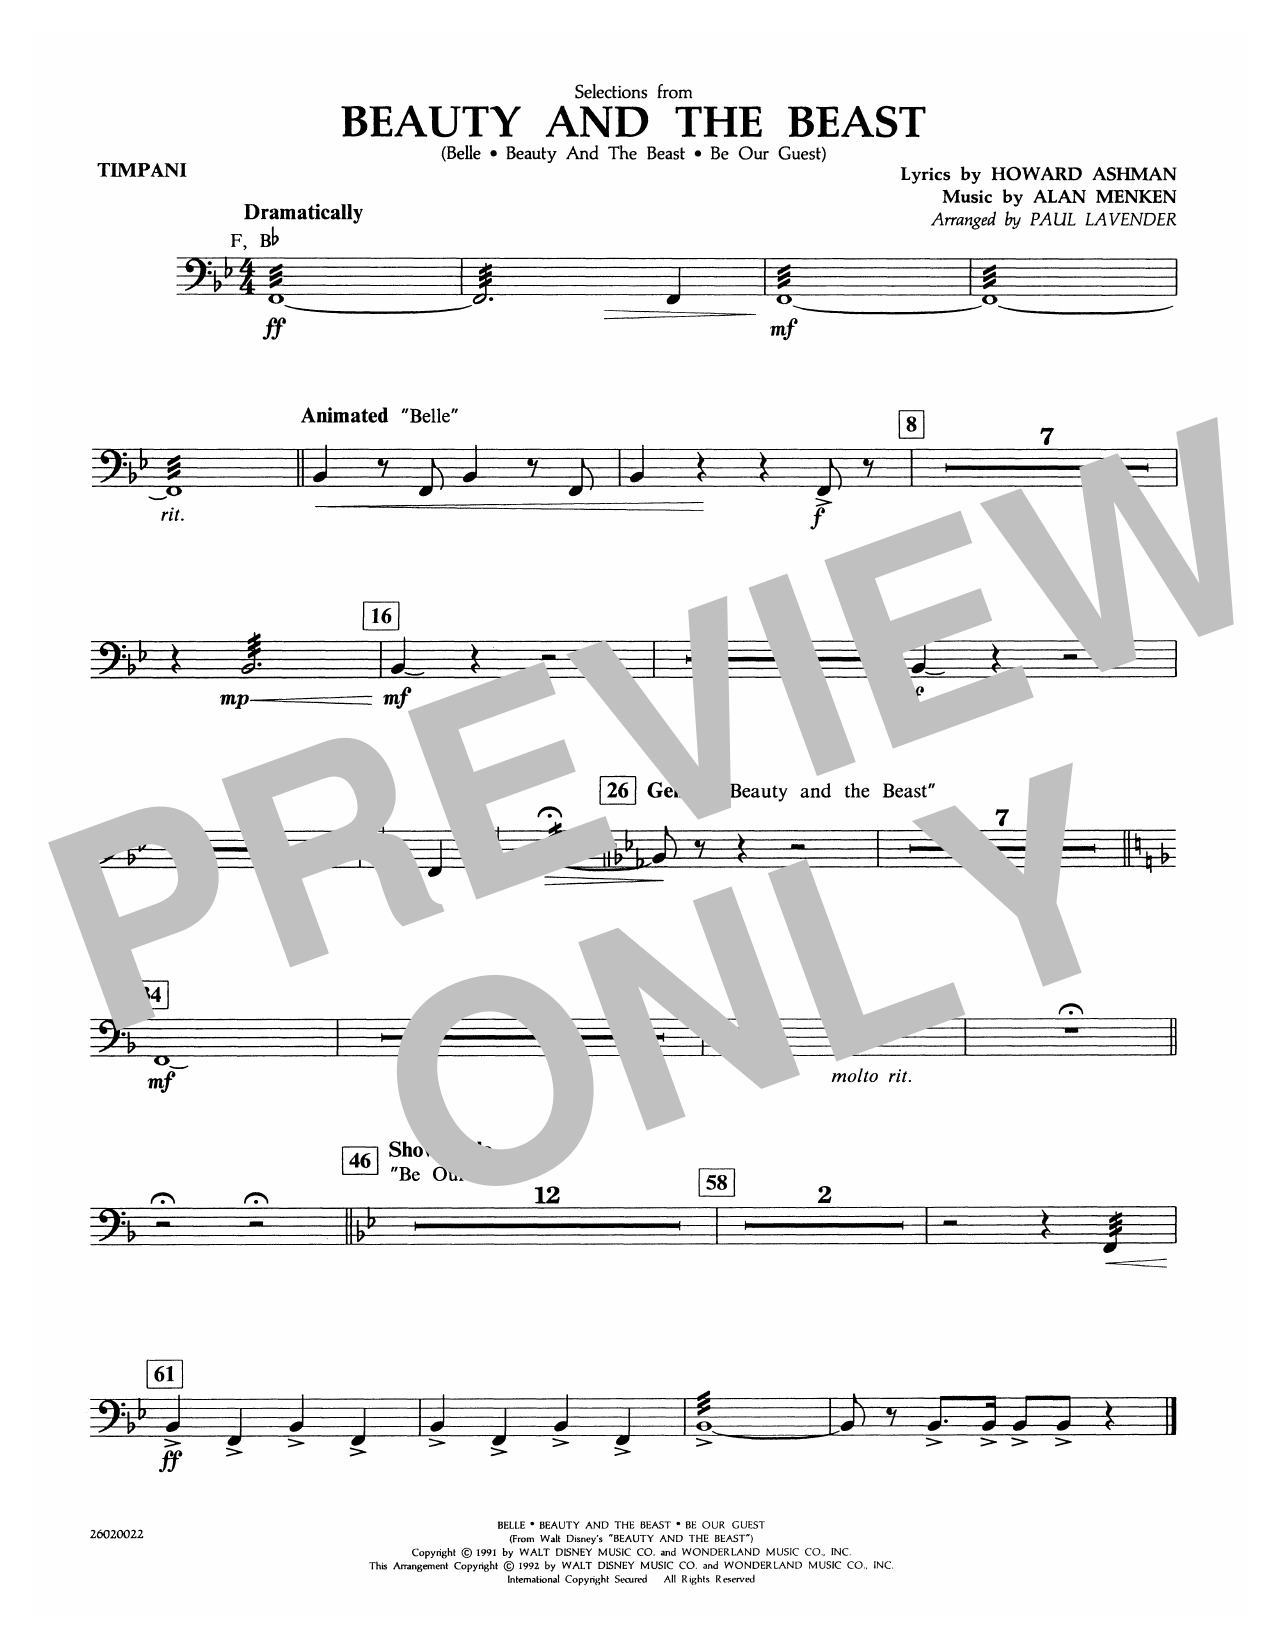 Selections from Beauty and the Beast - Timpani Sheet Music